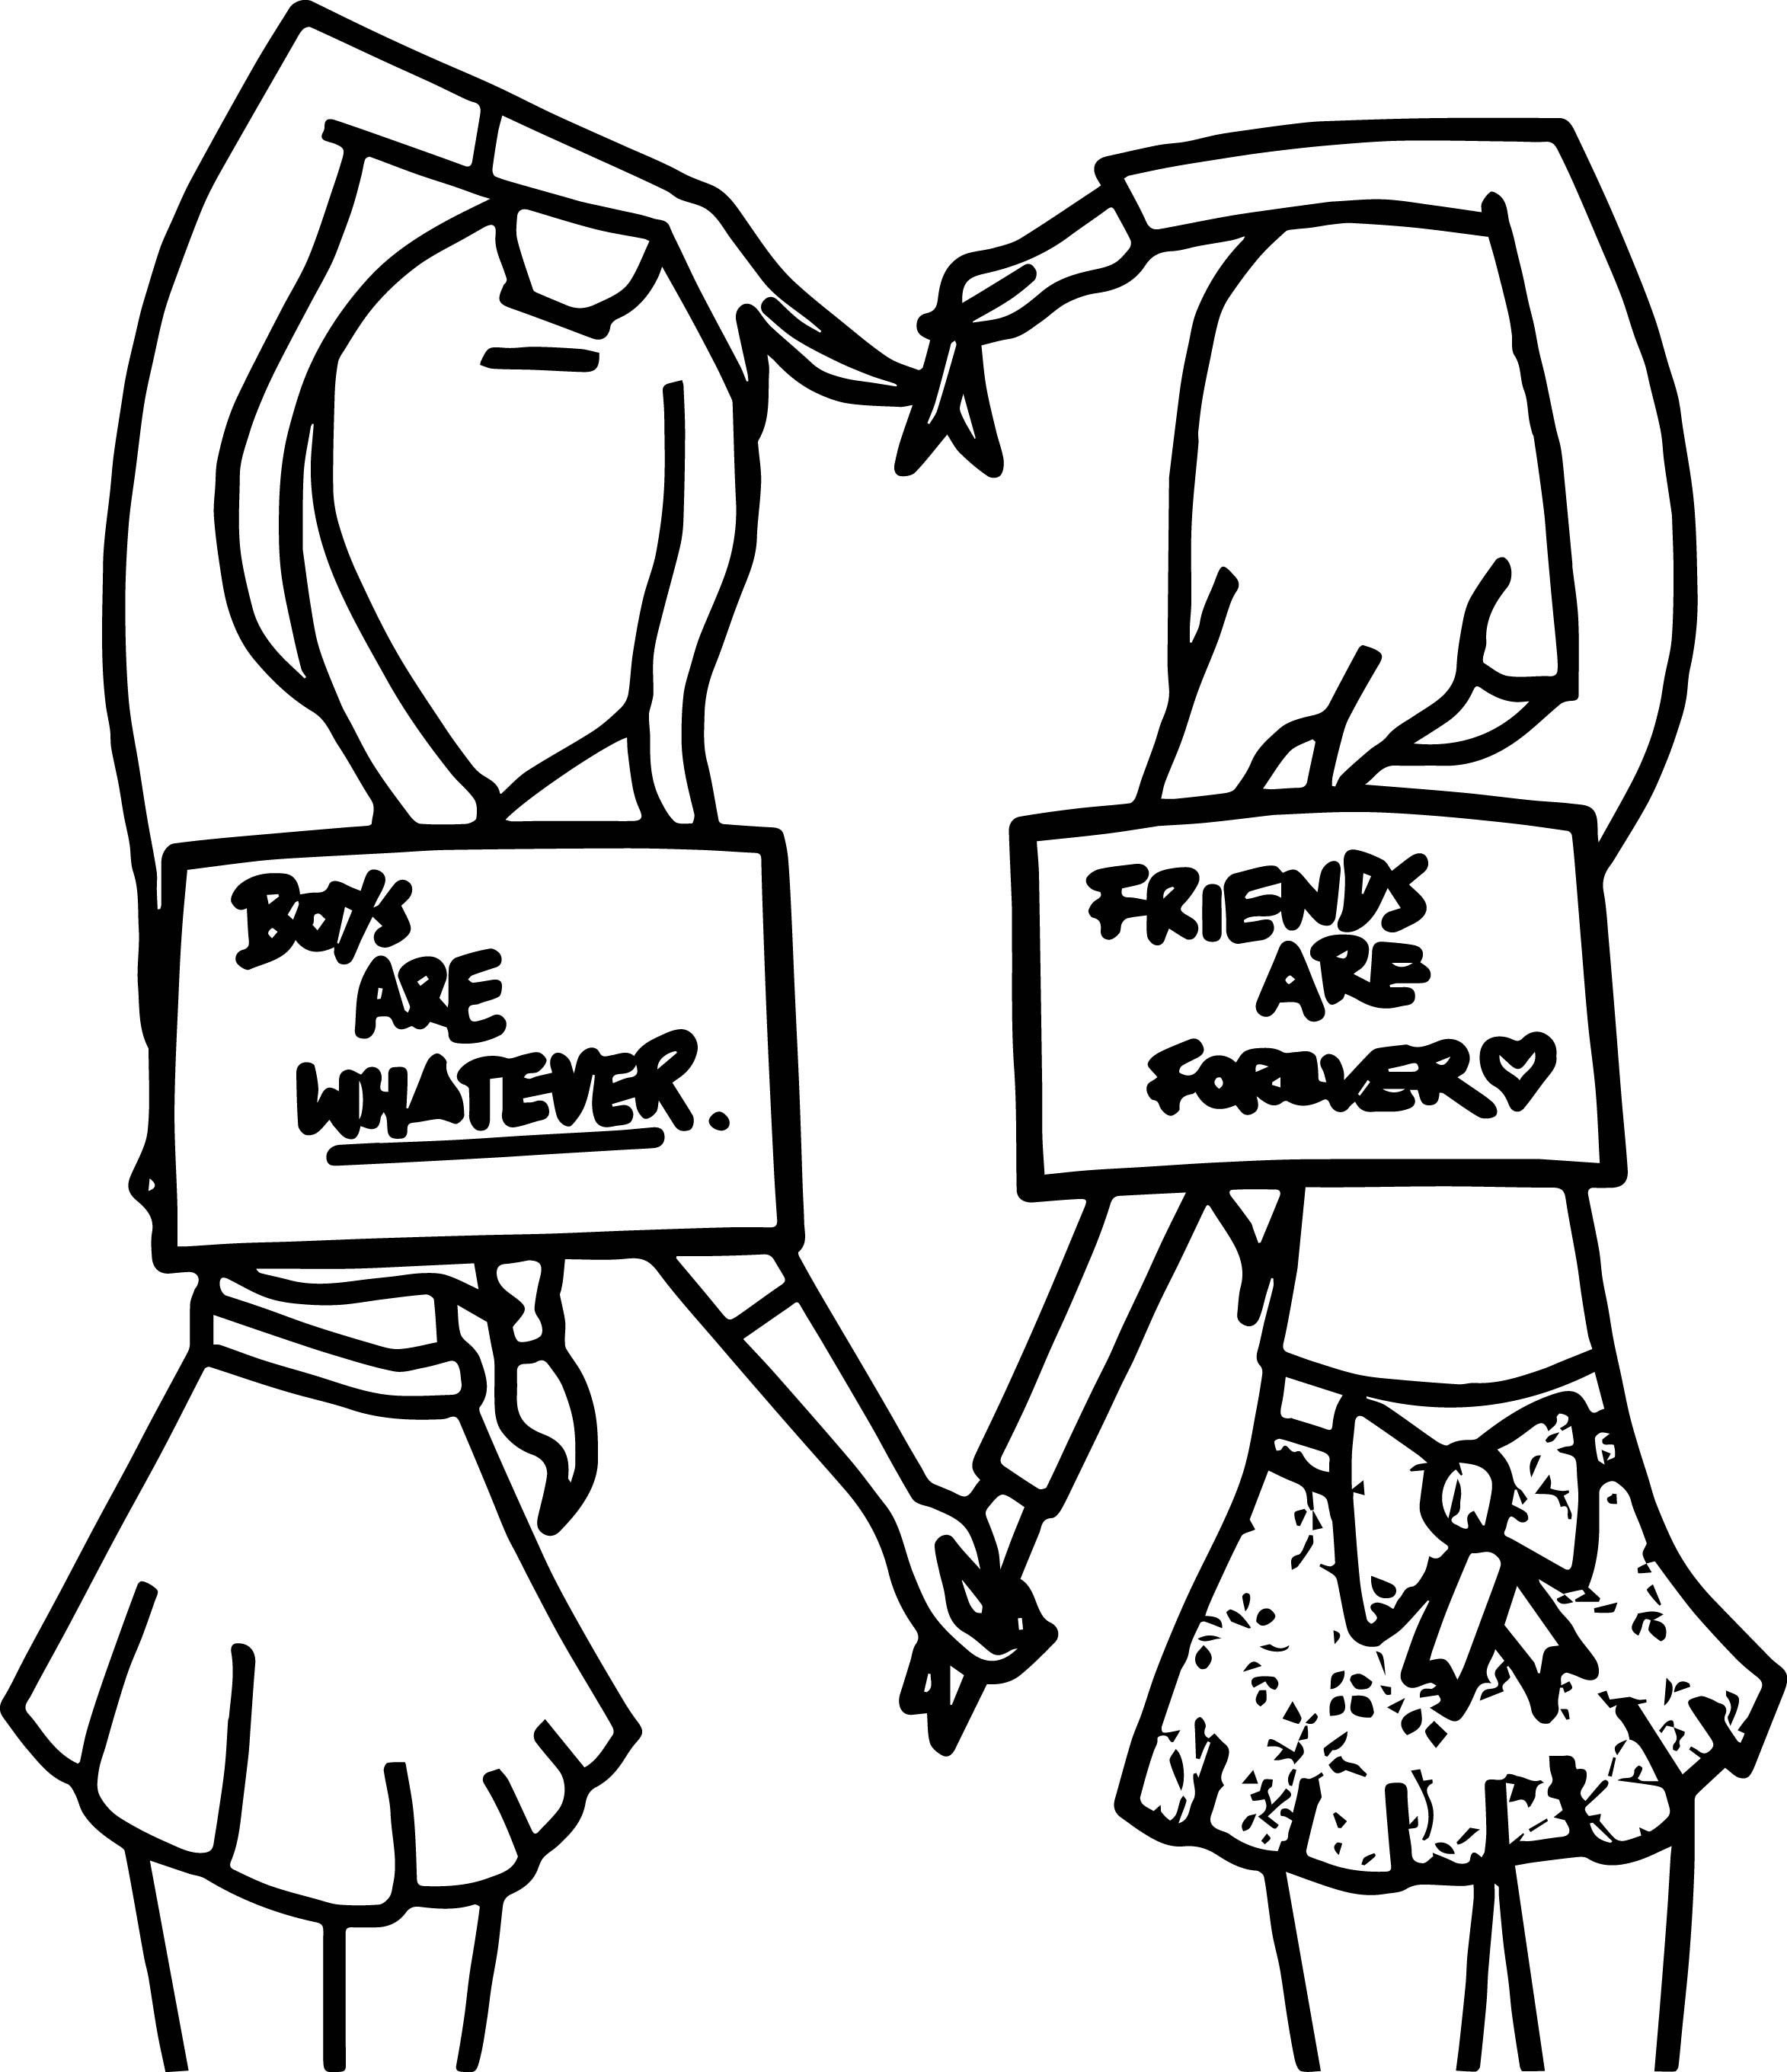 Pin By Isabel On Couloring Pagers Cute Easy Drawings Bff Drawings Best Friend Drawings